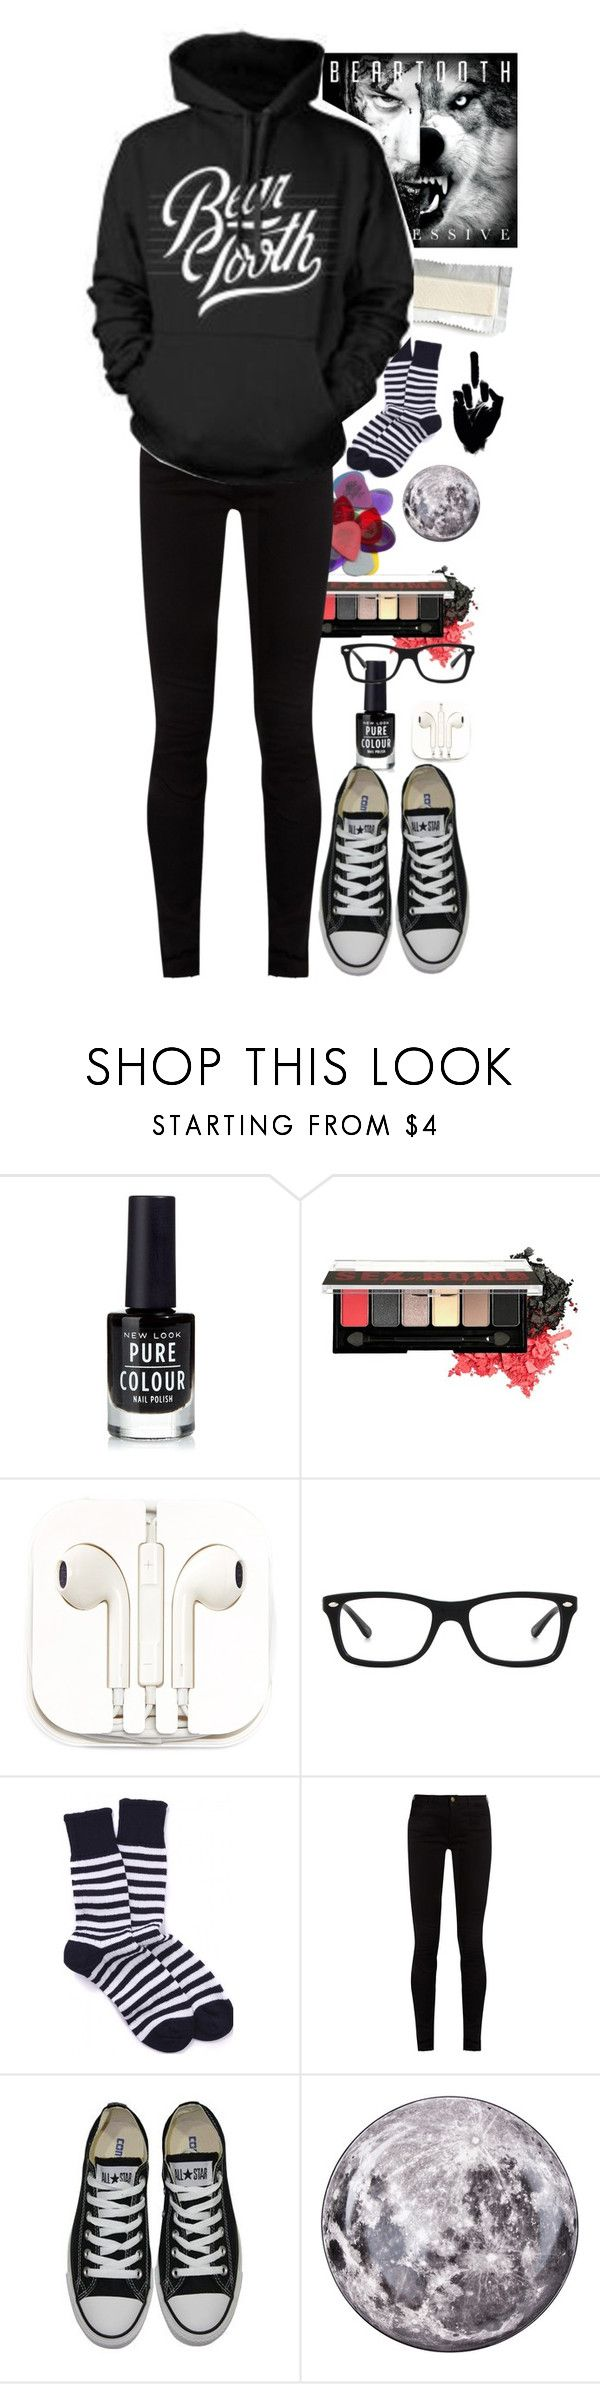 """""""shut up about the warped tour lineup it's great"""" by emorecyclable ❤ liked on Polyvore featuring New Look, NYX, PhunkeeTree, Ray-Ban, Gucci, Converse and Seletti"""